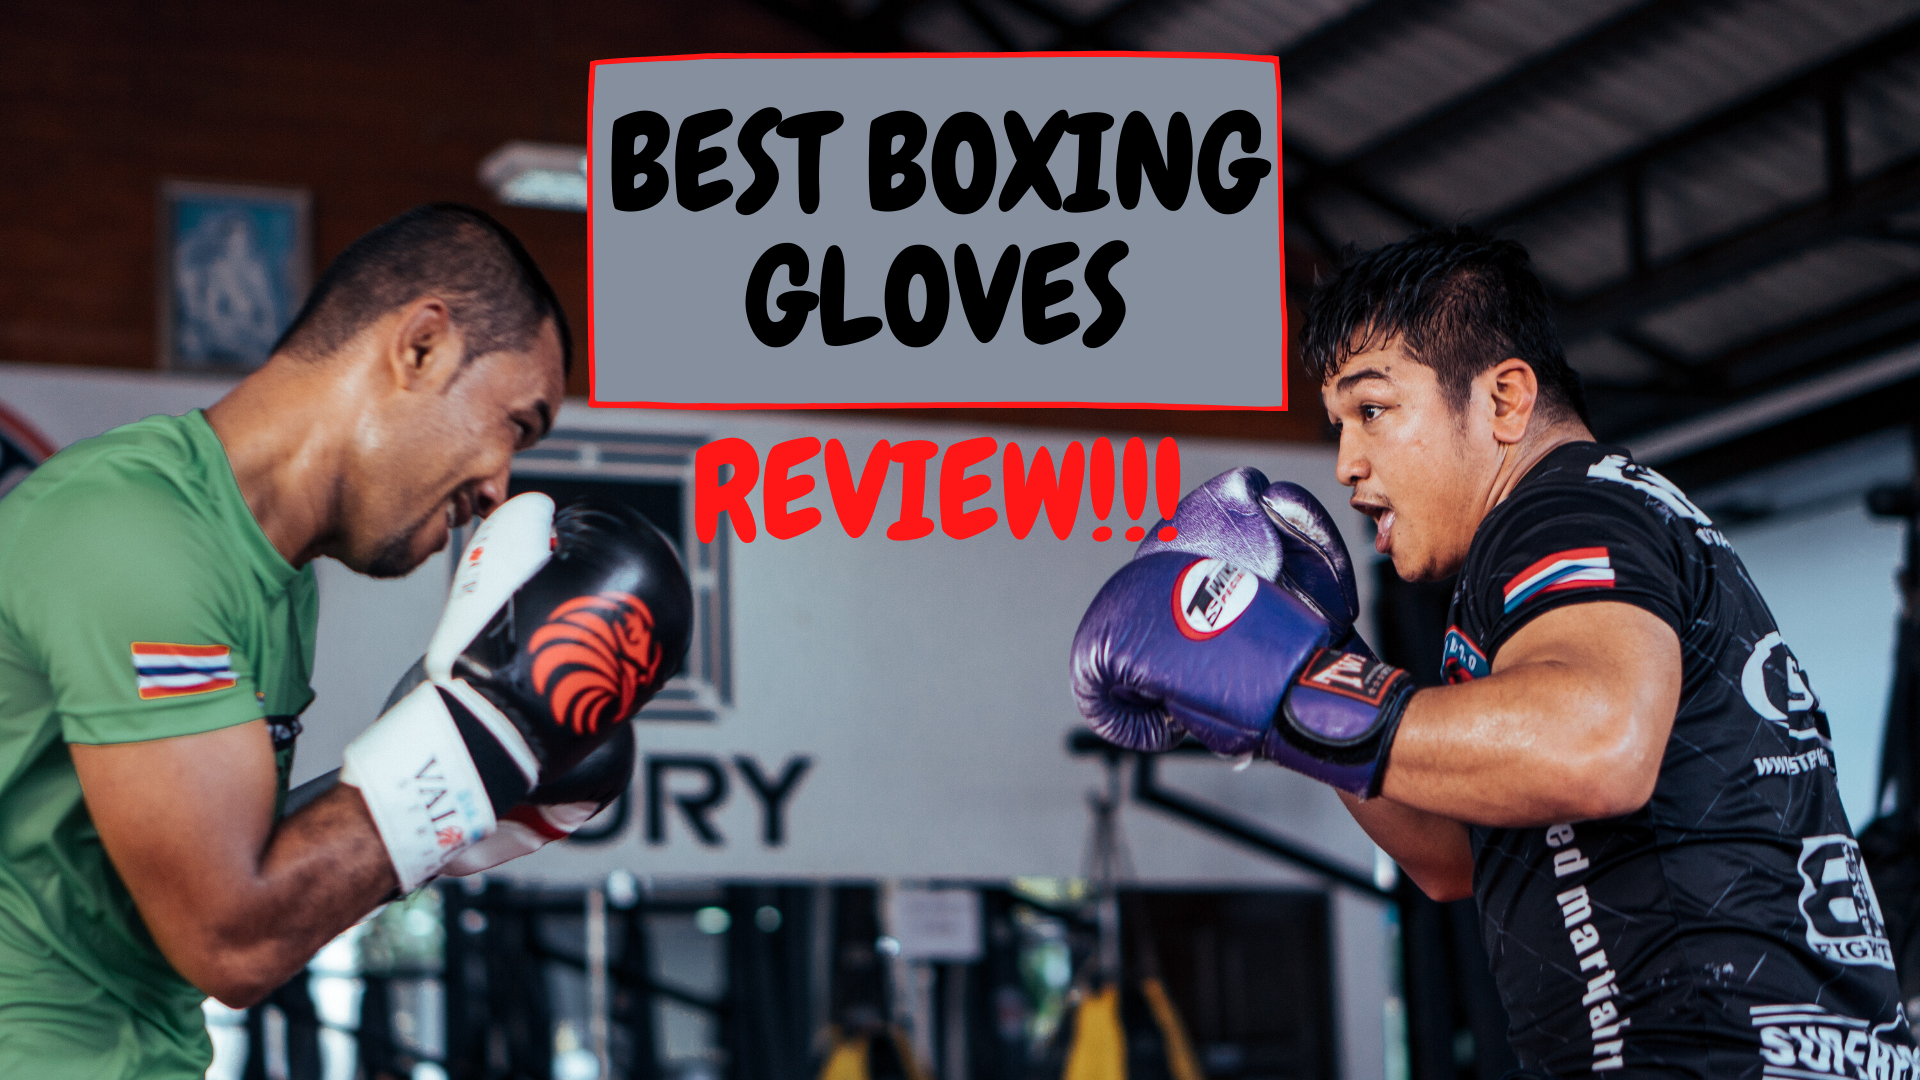 Best Boxing gloves for training